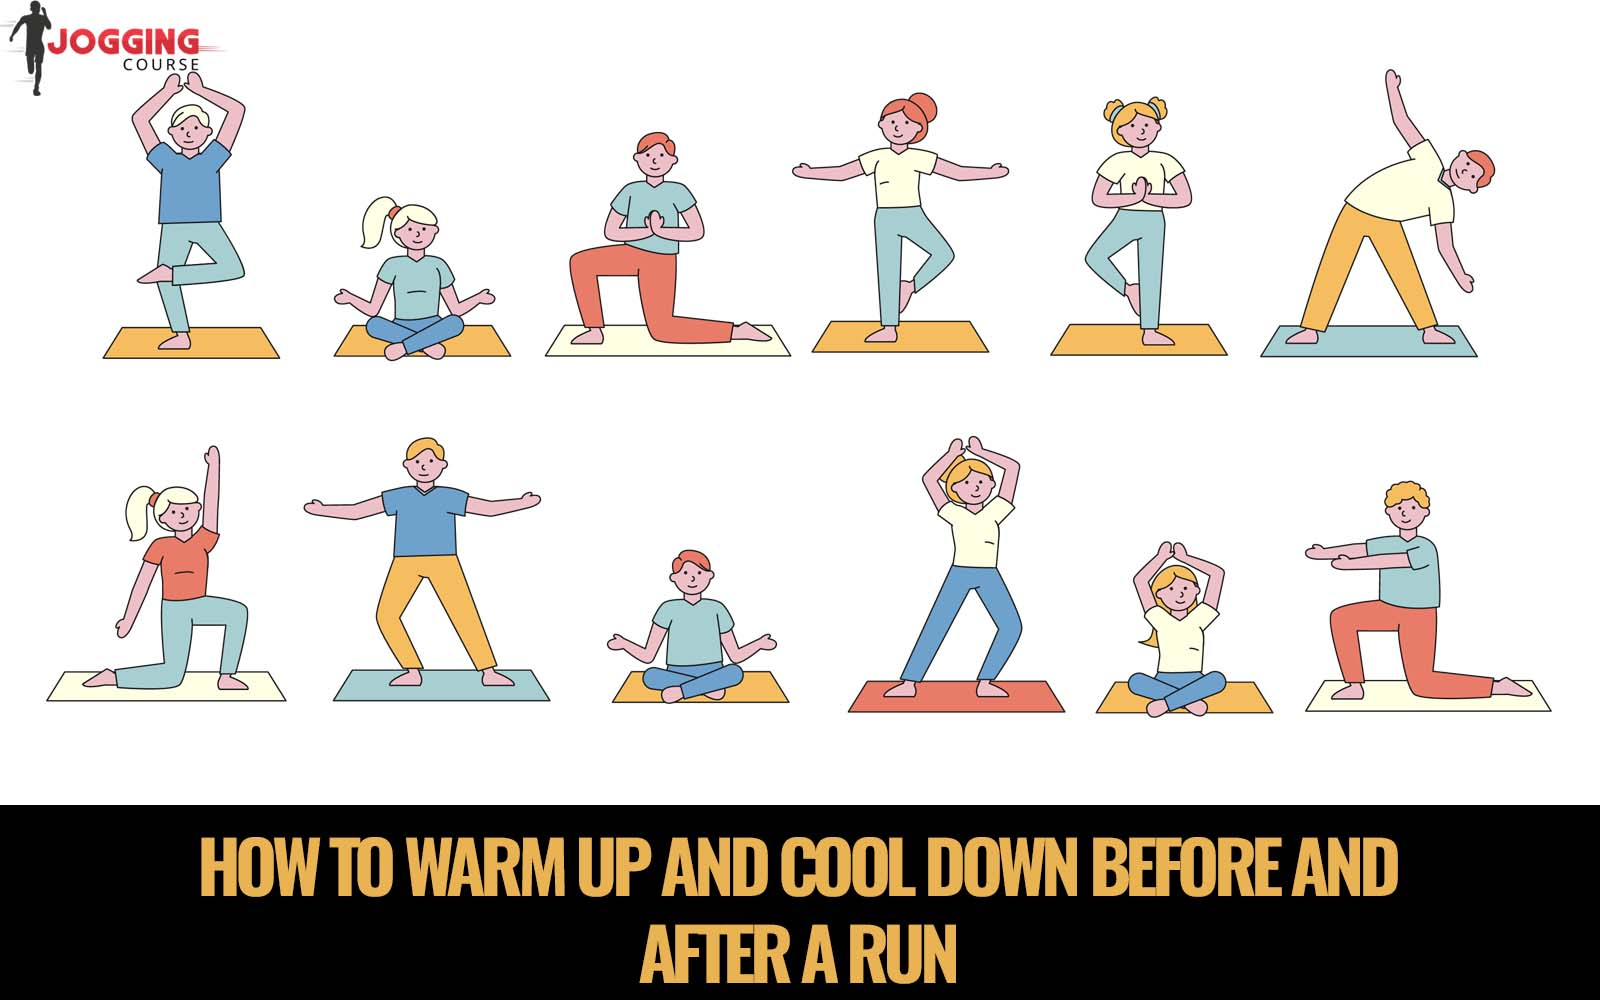 How to warm up and cool down